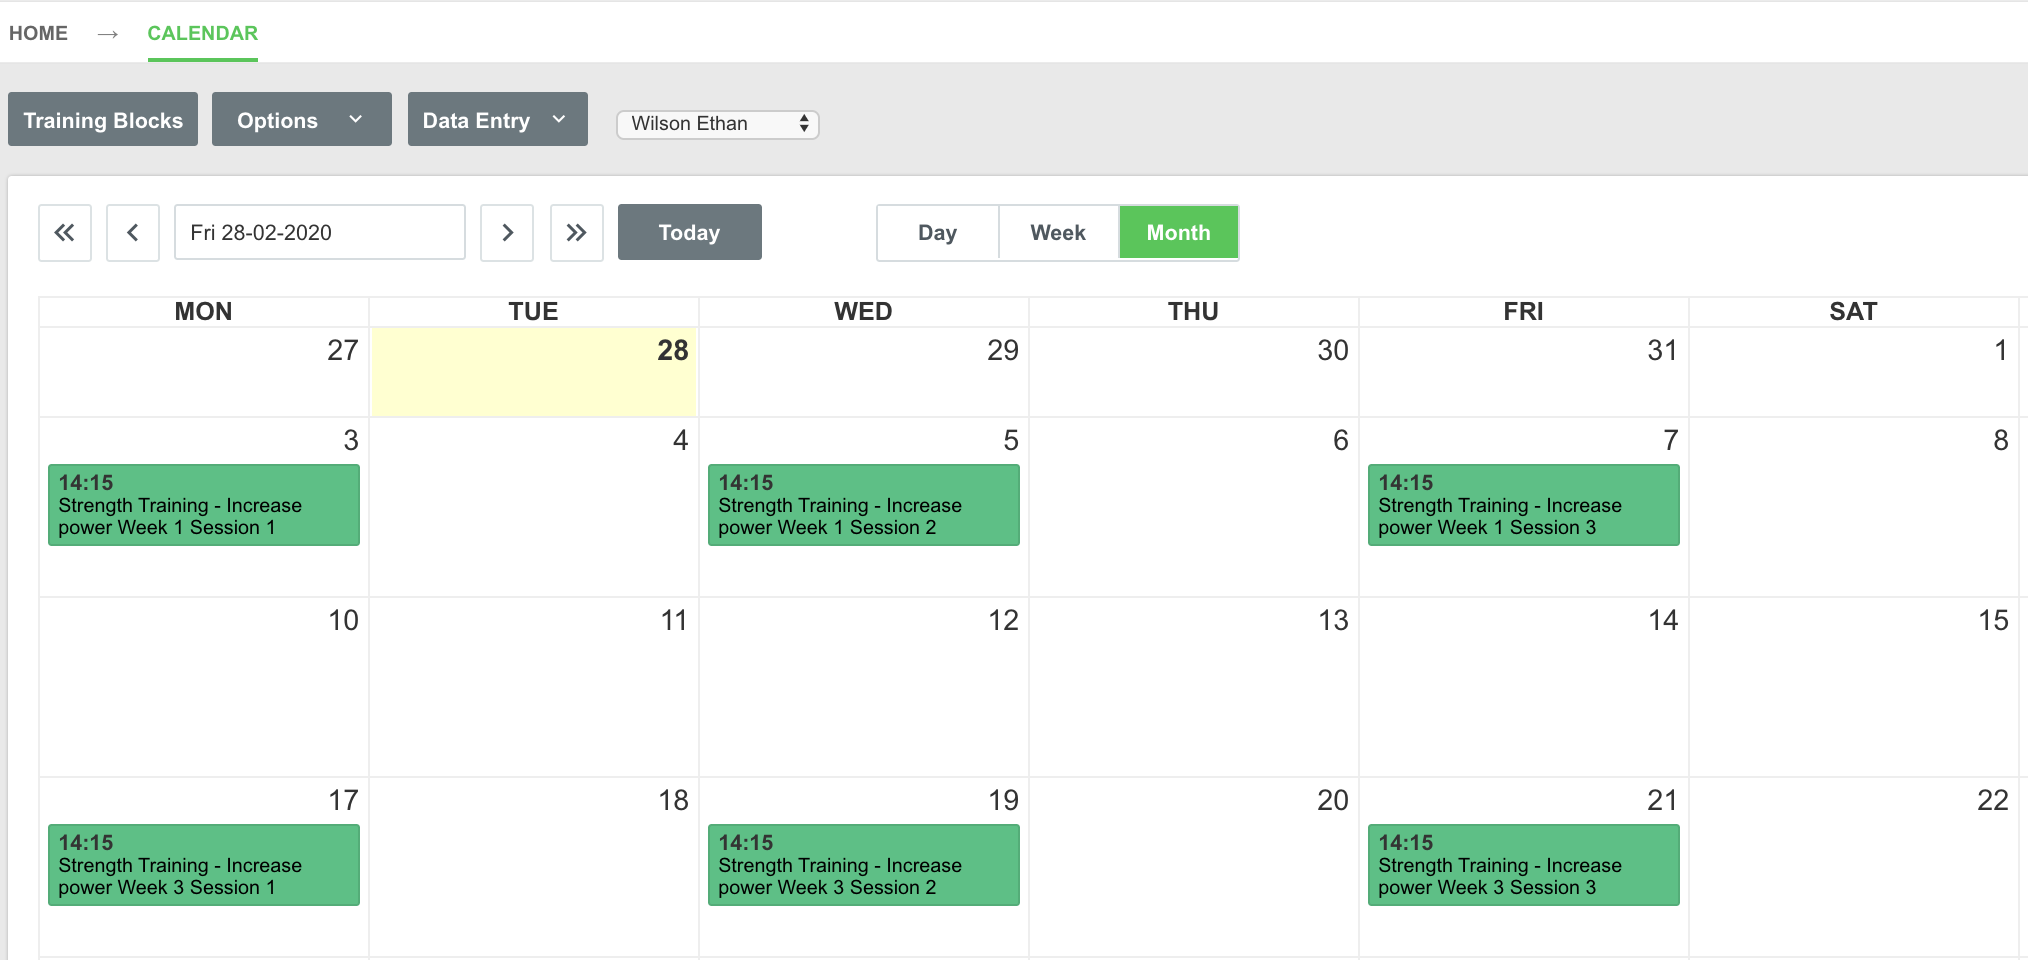 A screenshot showing an example of an athlete's calendar with an active training block visible